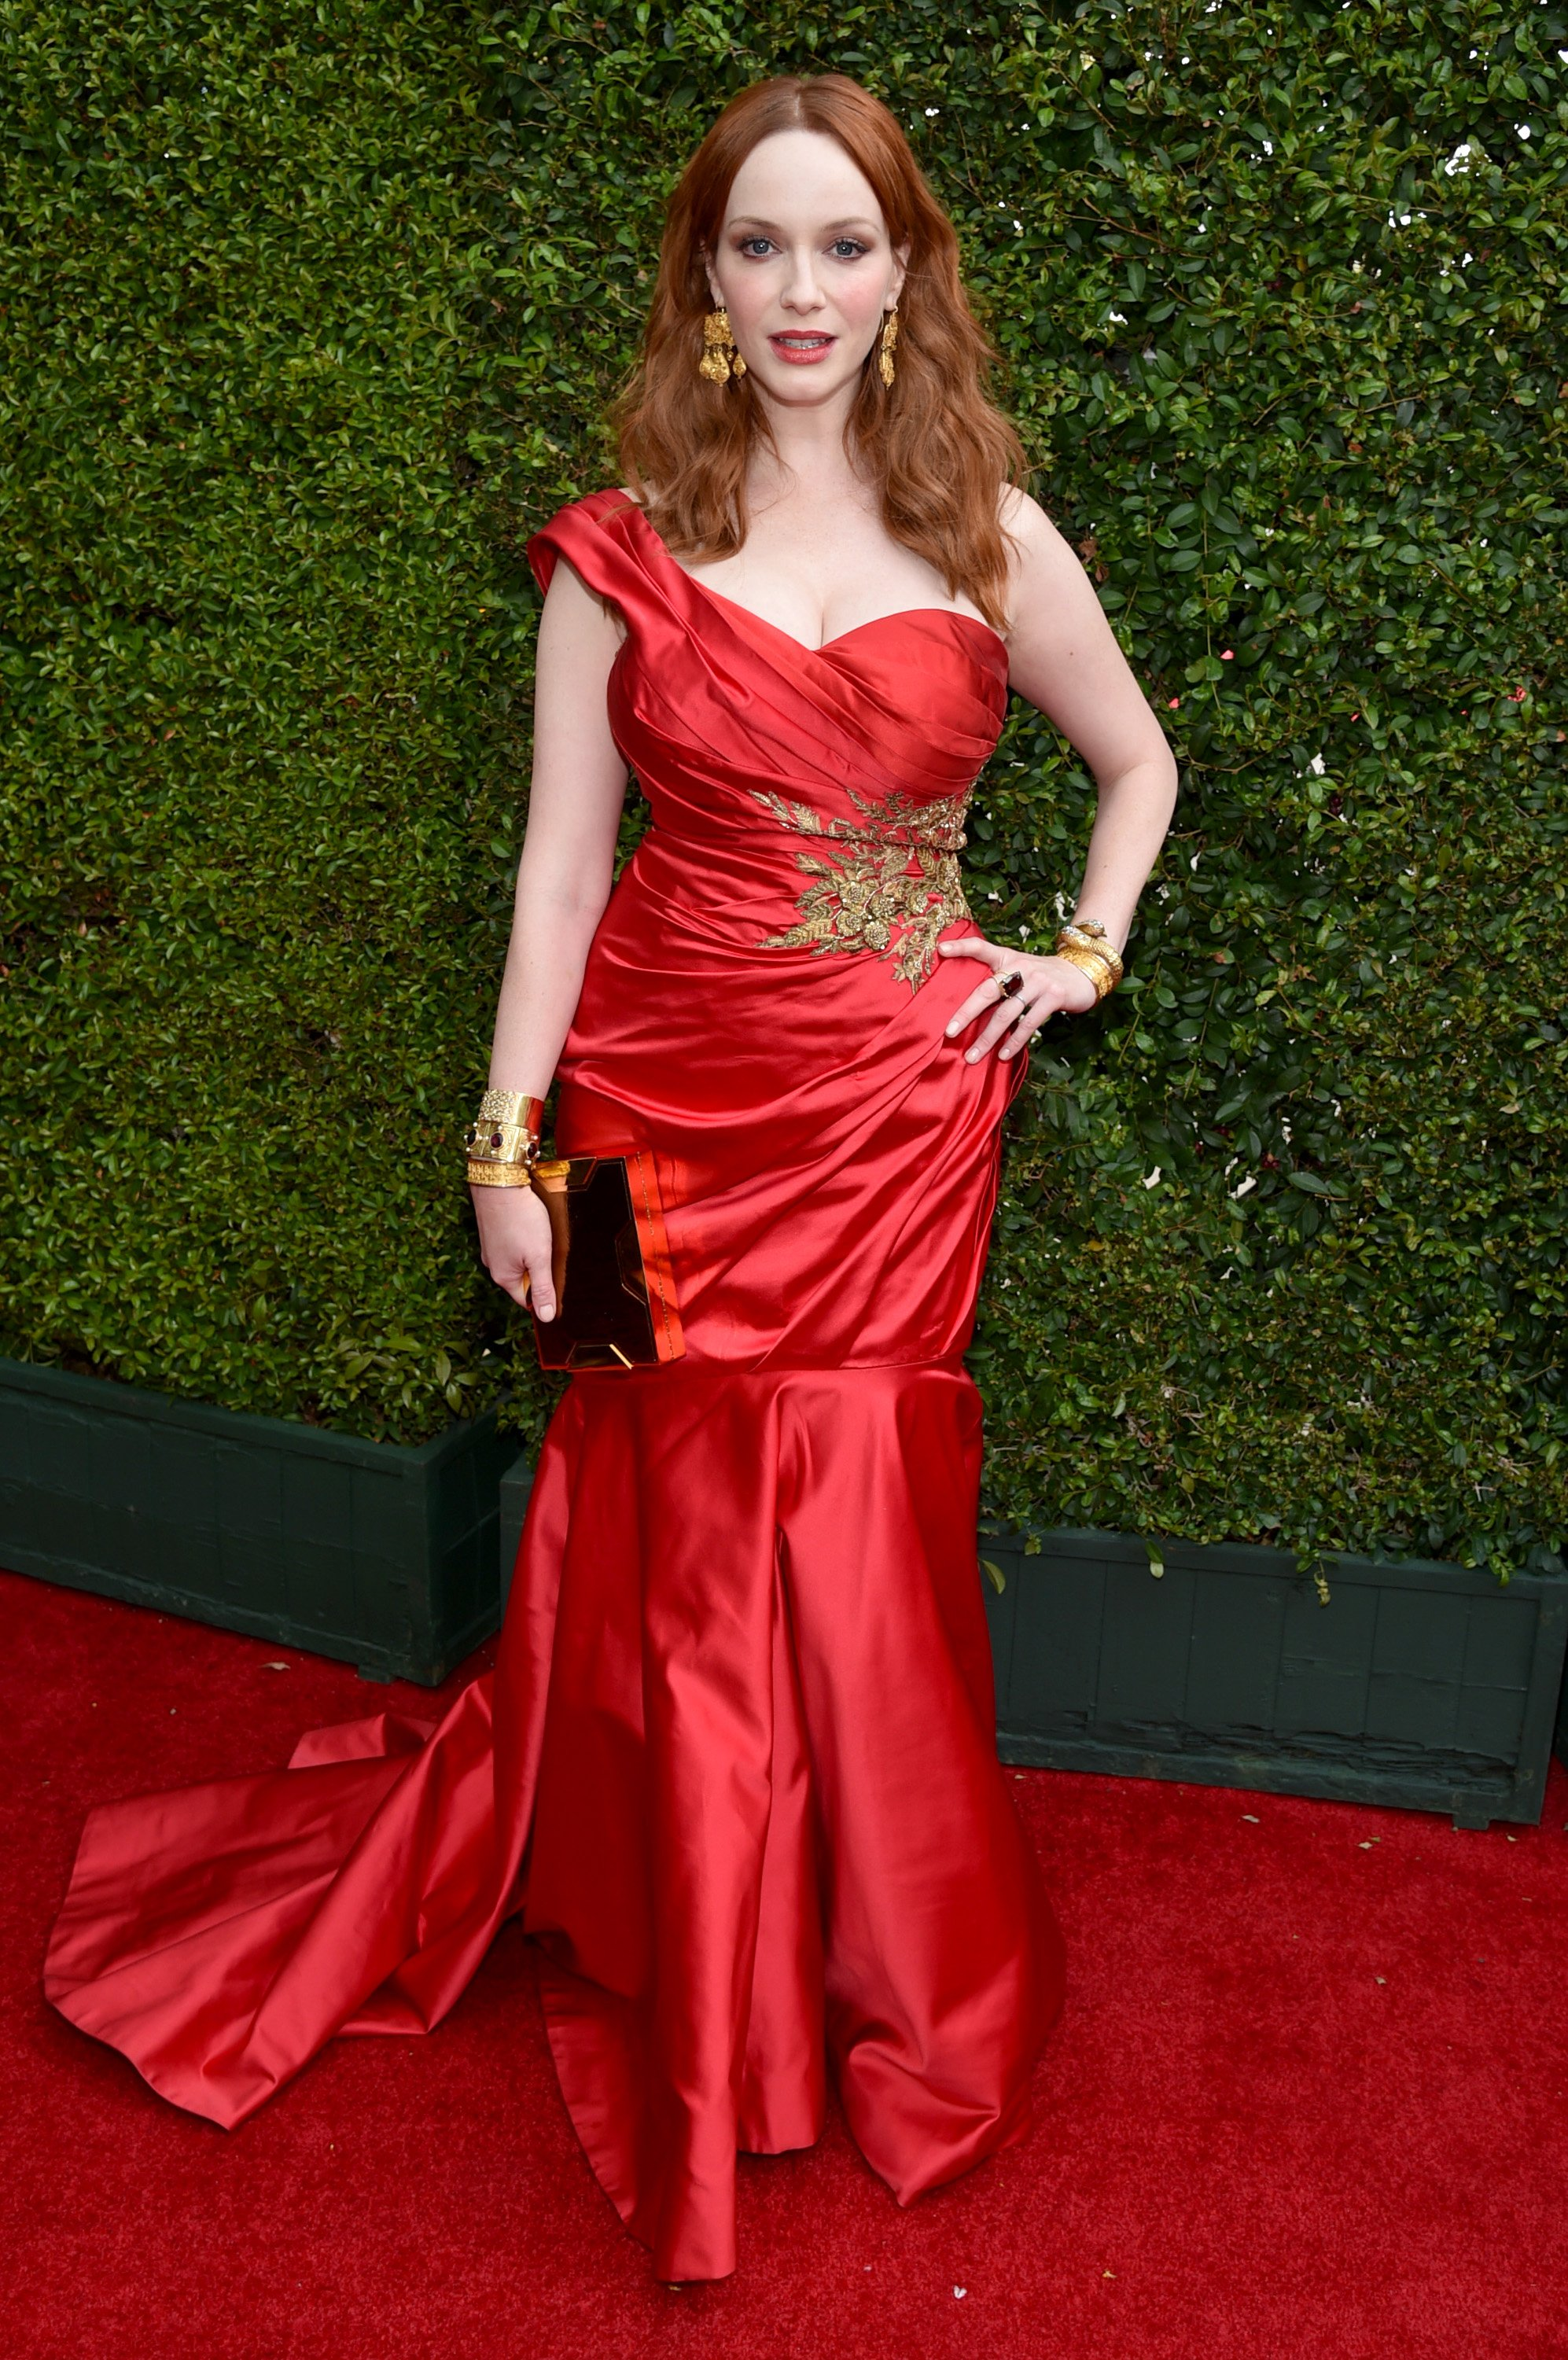 Christina Hendricks arrives at the 66th Primetime Emmy Awards at the Nokia Theatre L.A. Live on Monday, Aug. 25, 2014, in Los Angeles.